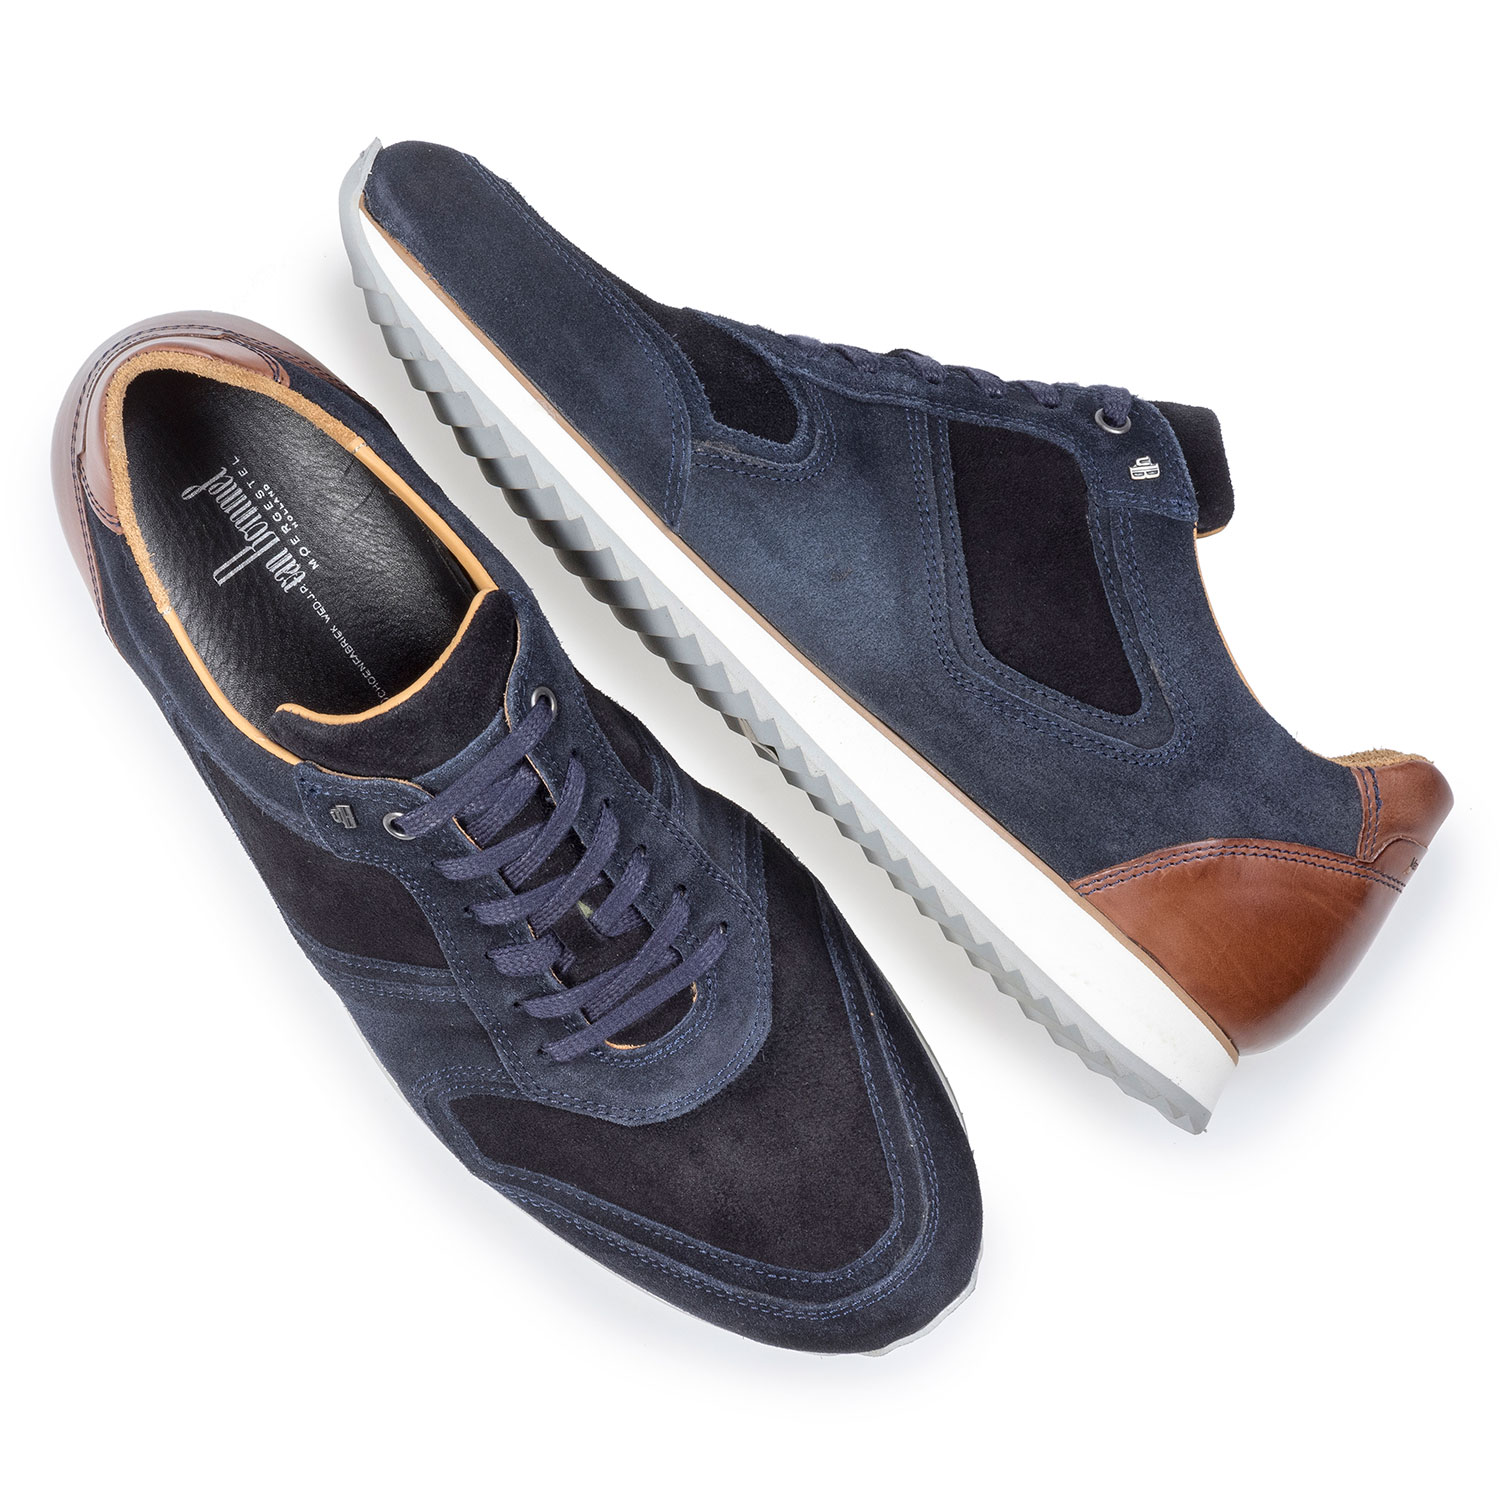 16224/18 - Dark blue suede leather lace shoe